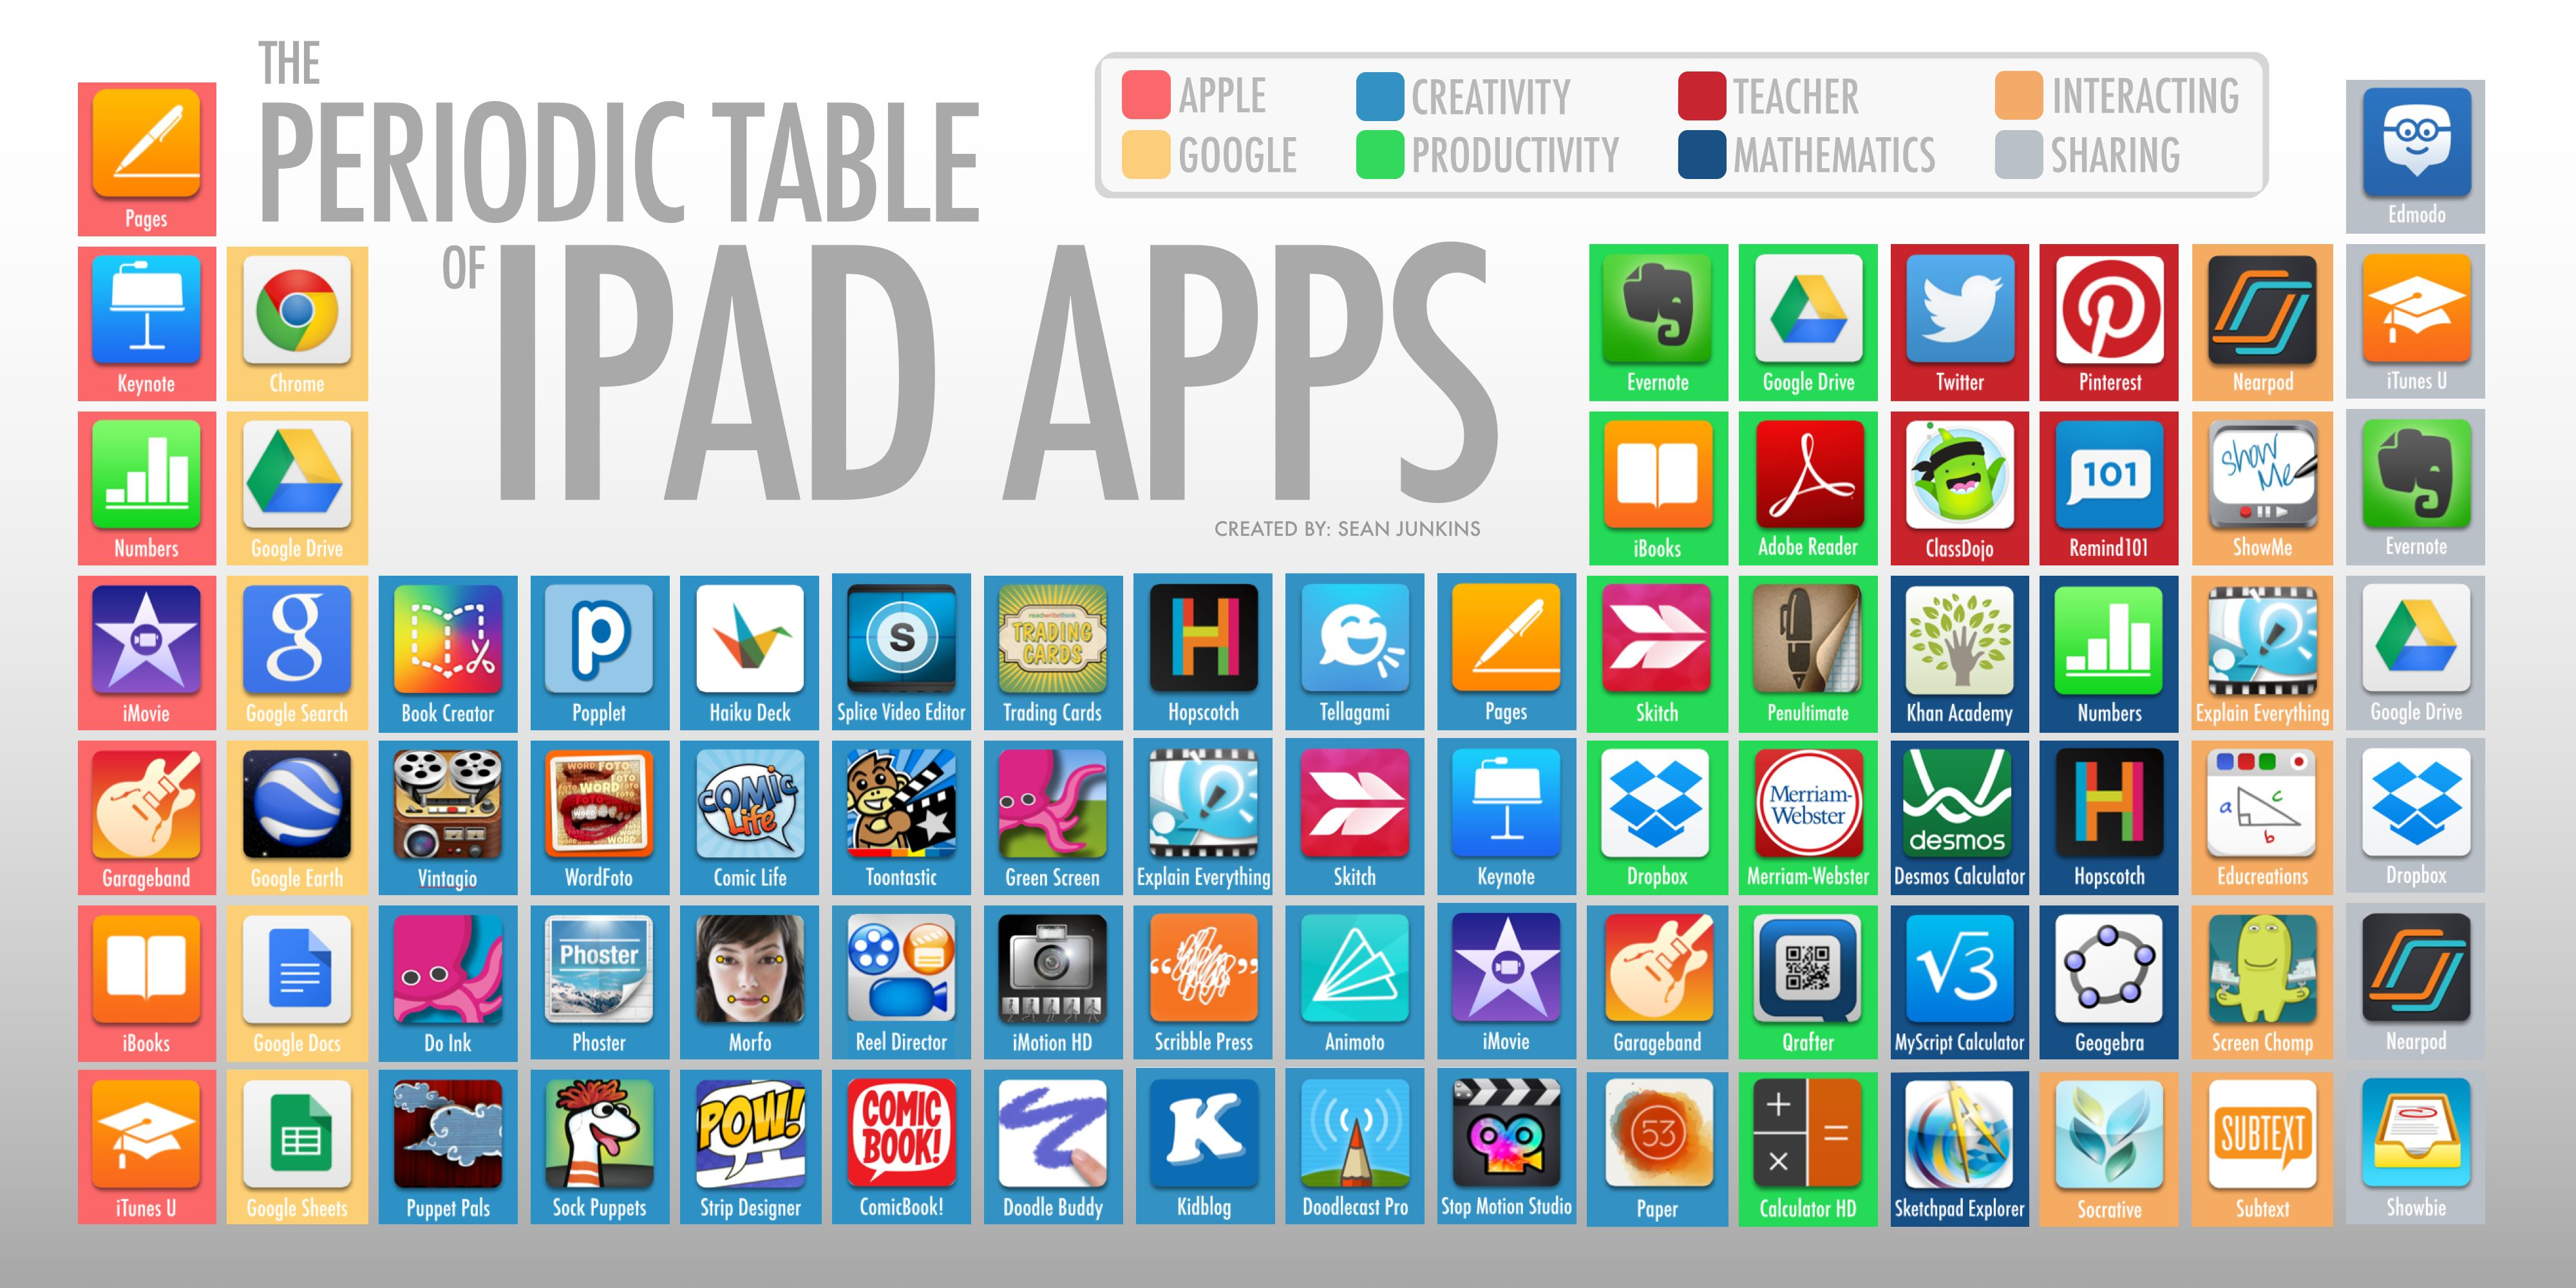 Periodic table ipad apps great organization of apps by apple periodic table ipad apps great organization of apps by apple google creativity productivity teacher mathematics interacting and sharing ve gamestrikefo Gallery